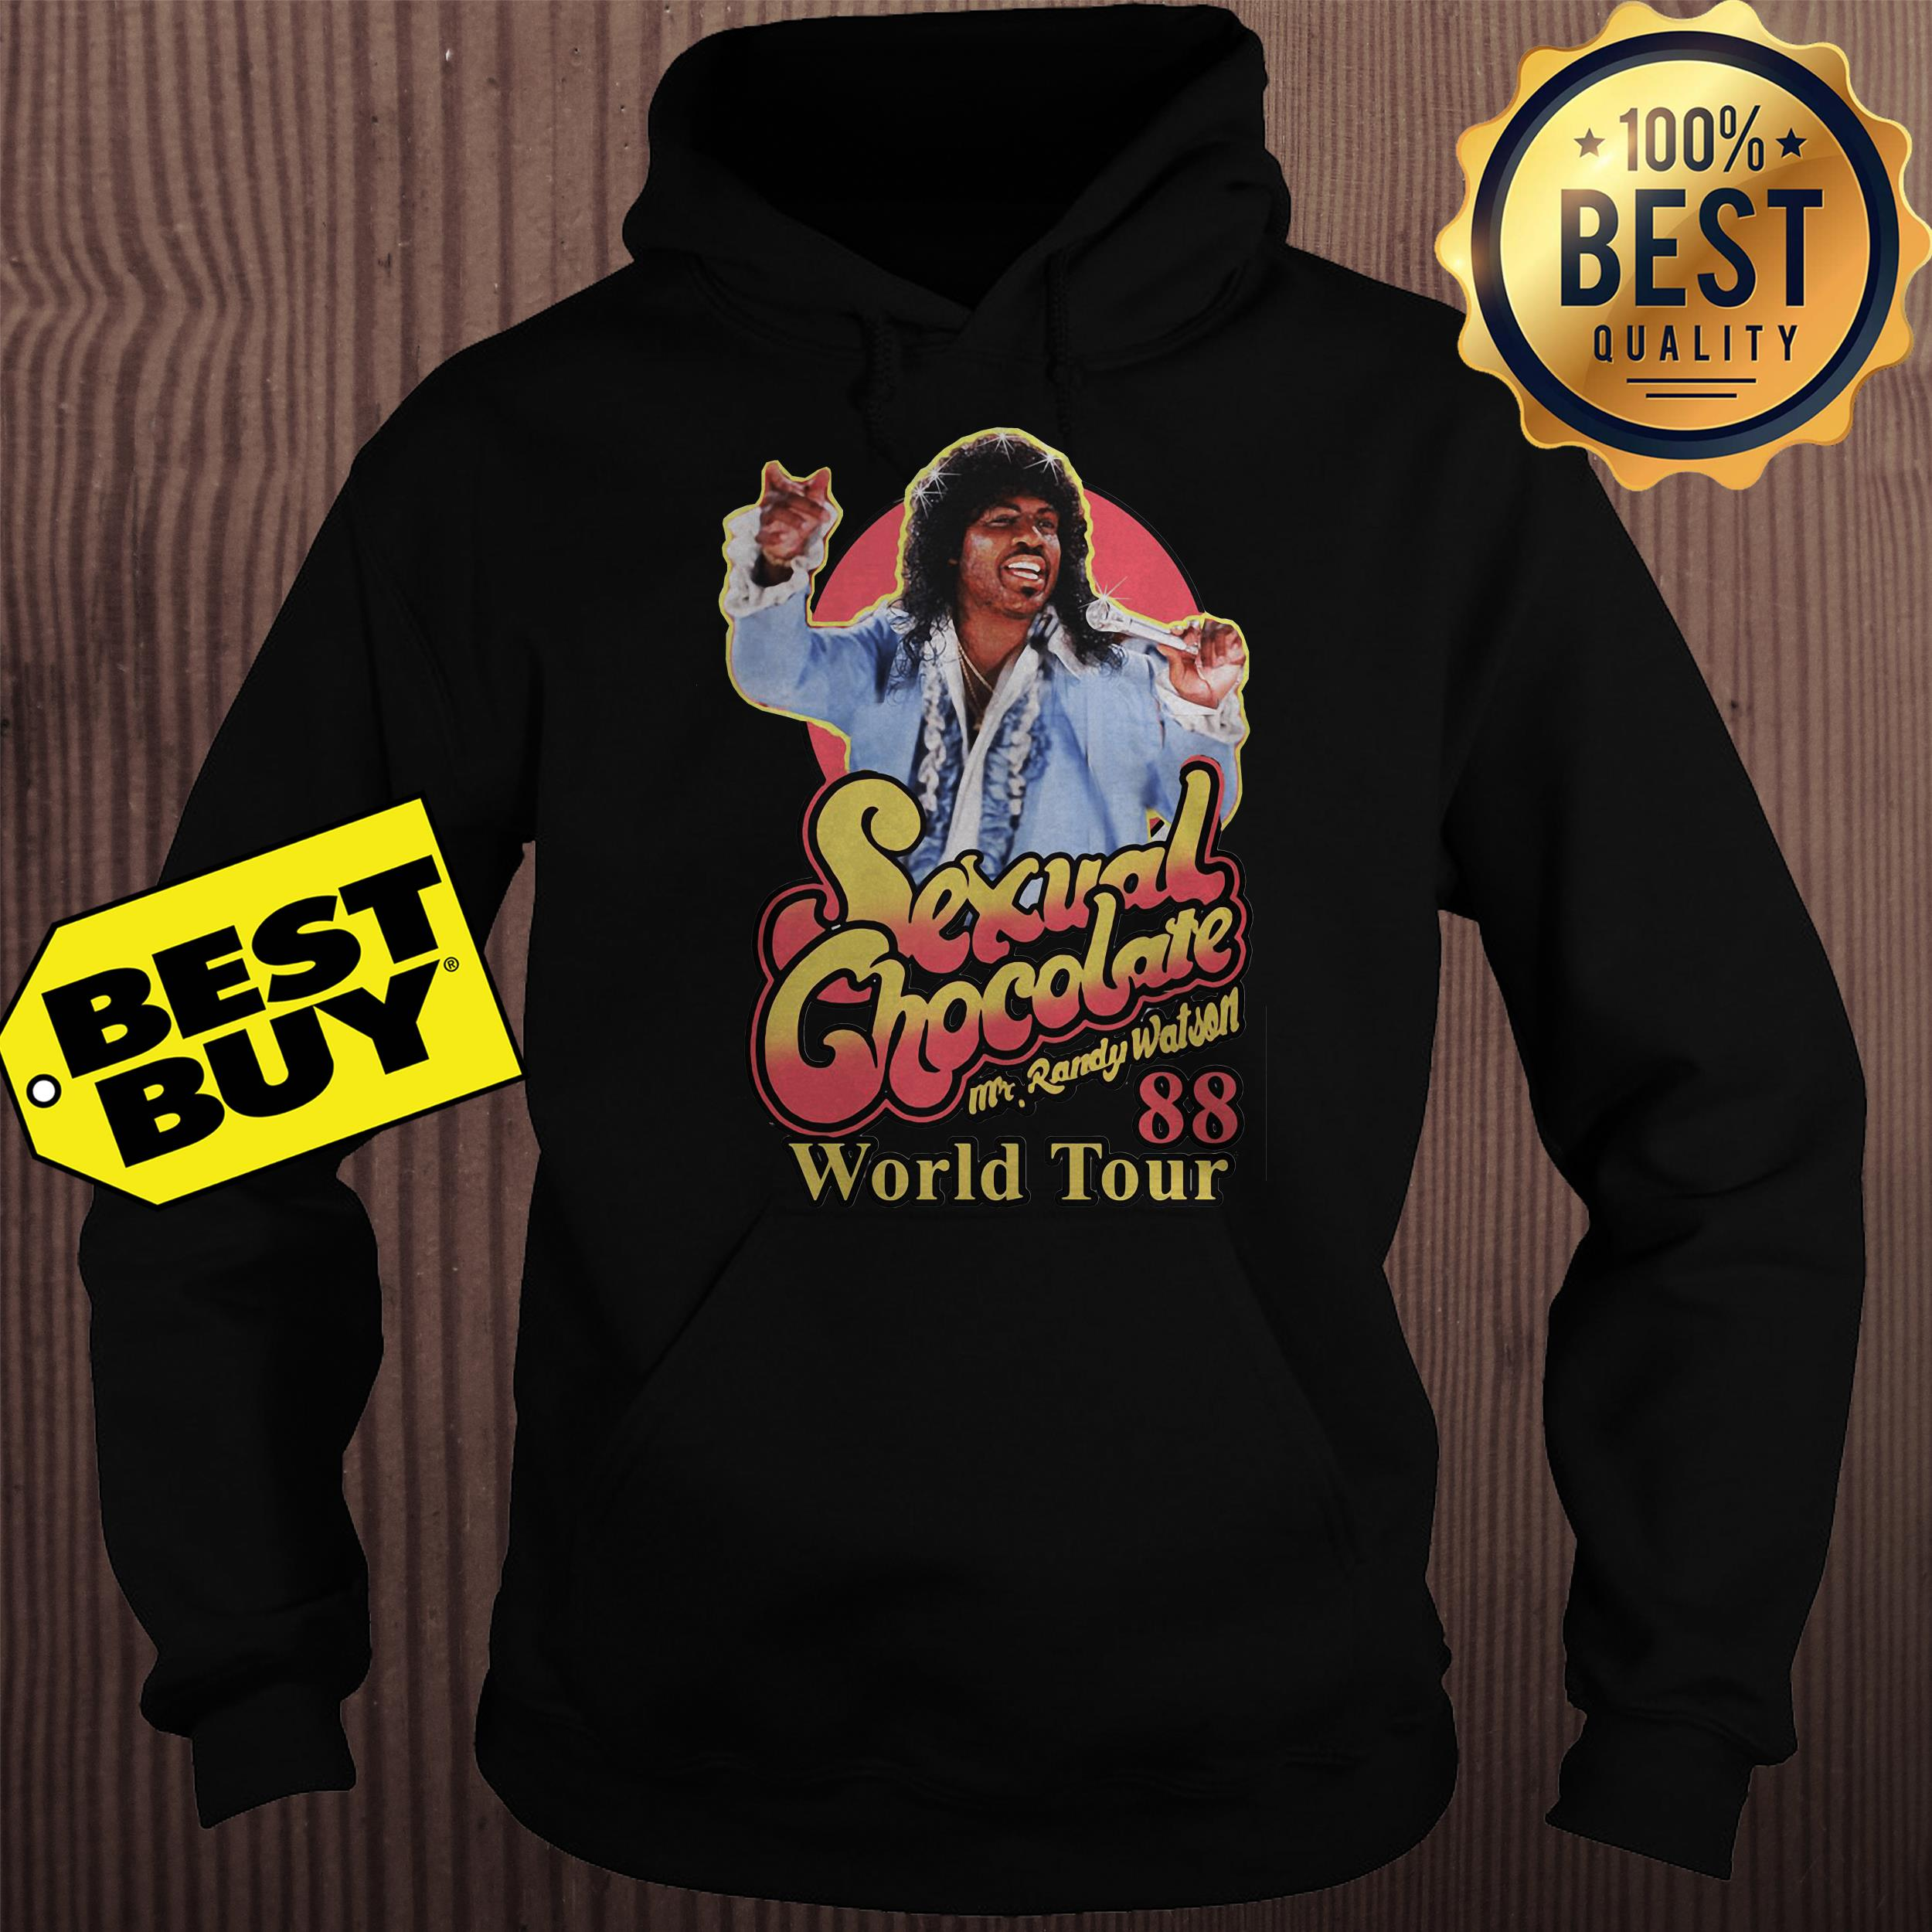 Sexual chocolate Mr.Randy Watson 88 world tour hoodie